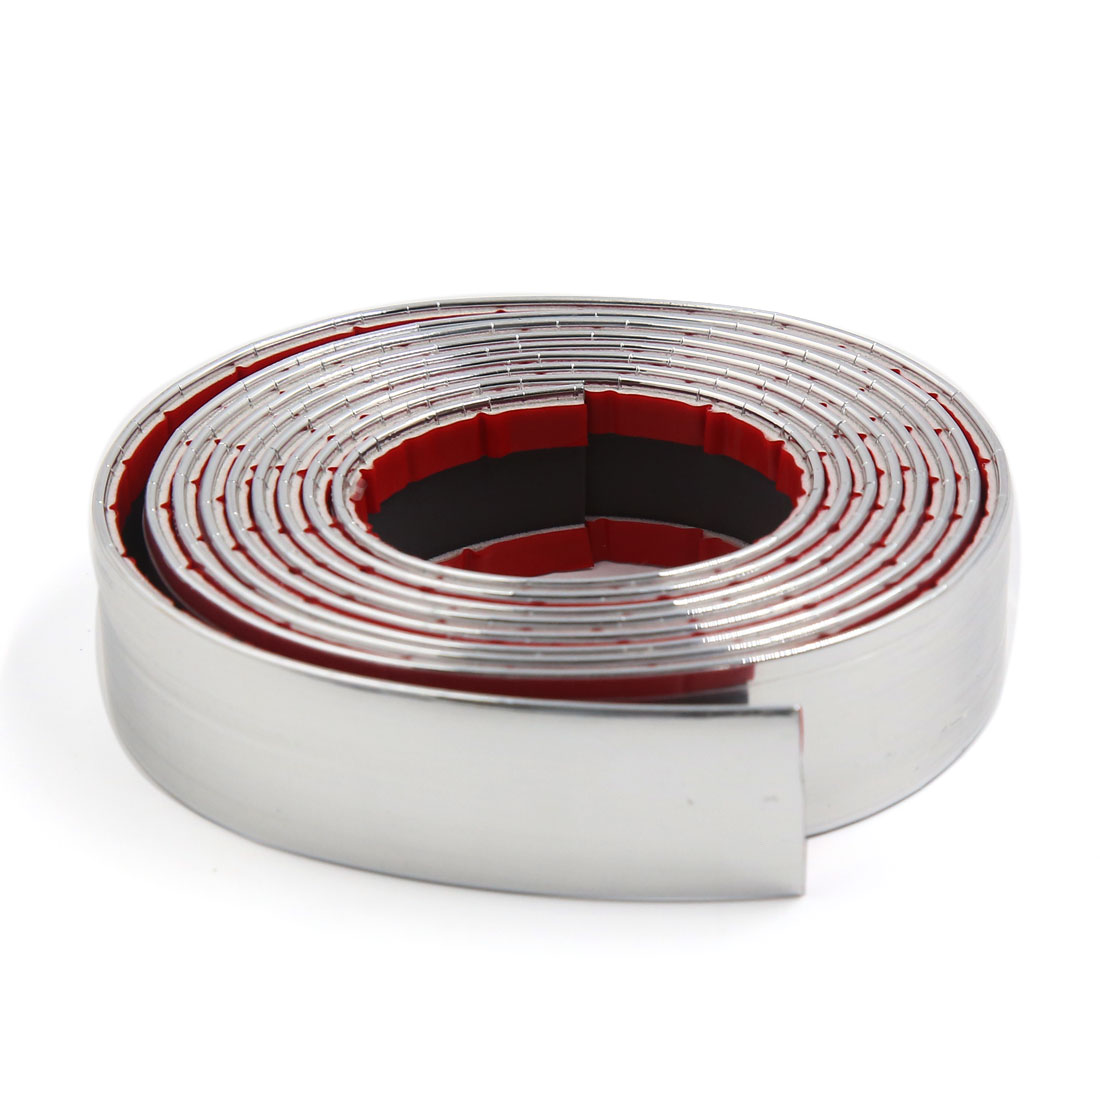 2M x 25MM Moulding Trim Strip Car Door Scratch Protecter Edge Guard Cover